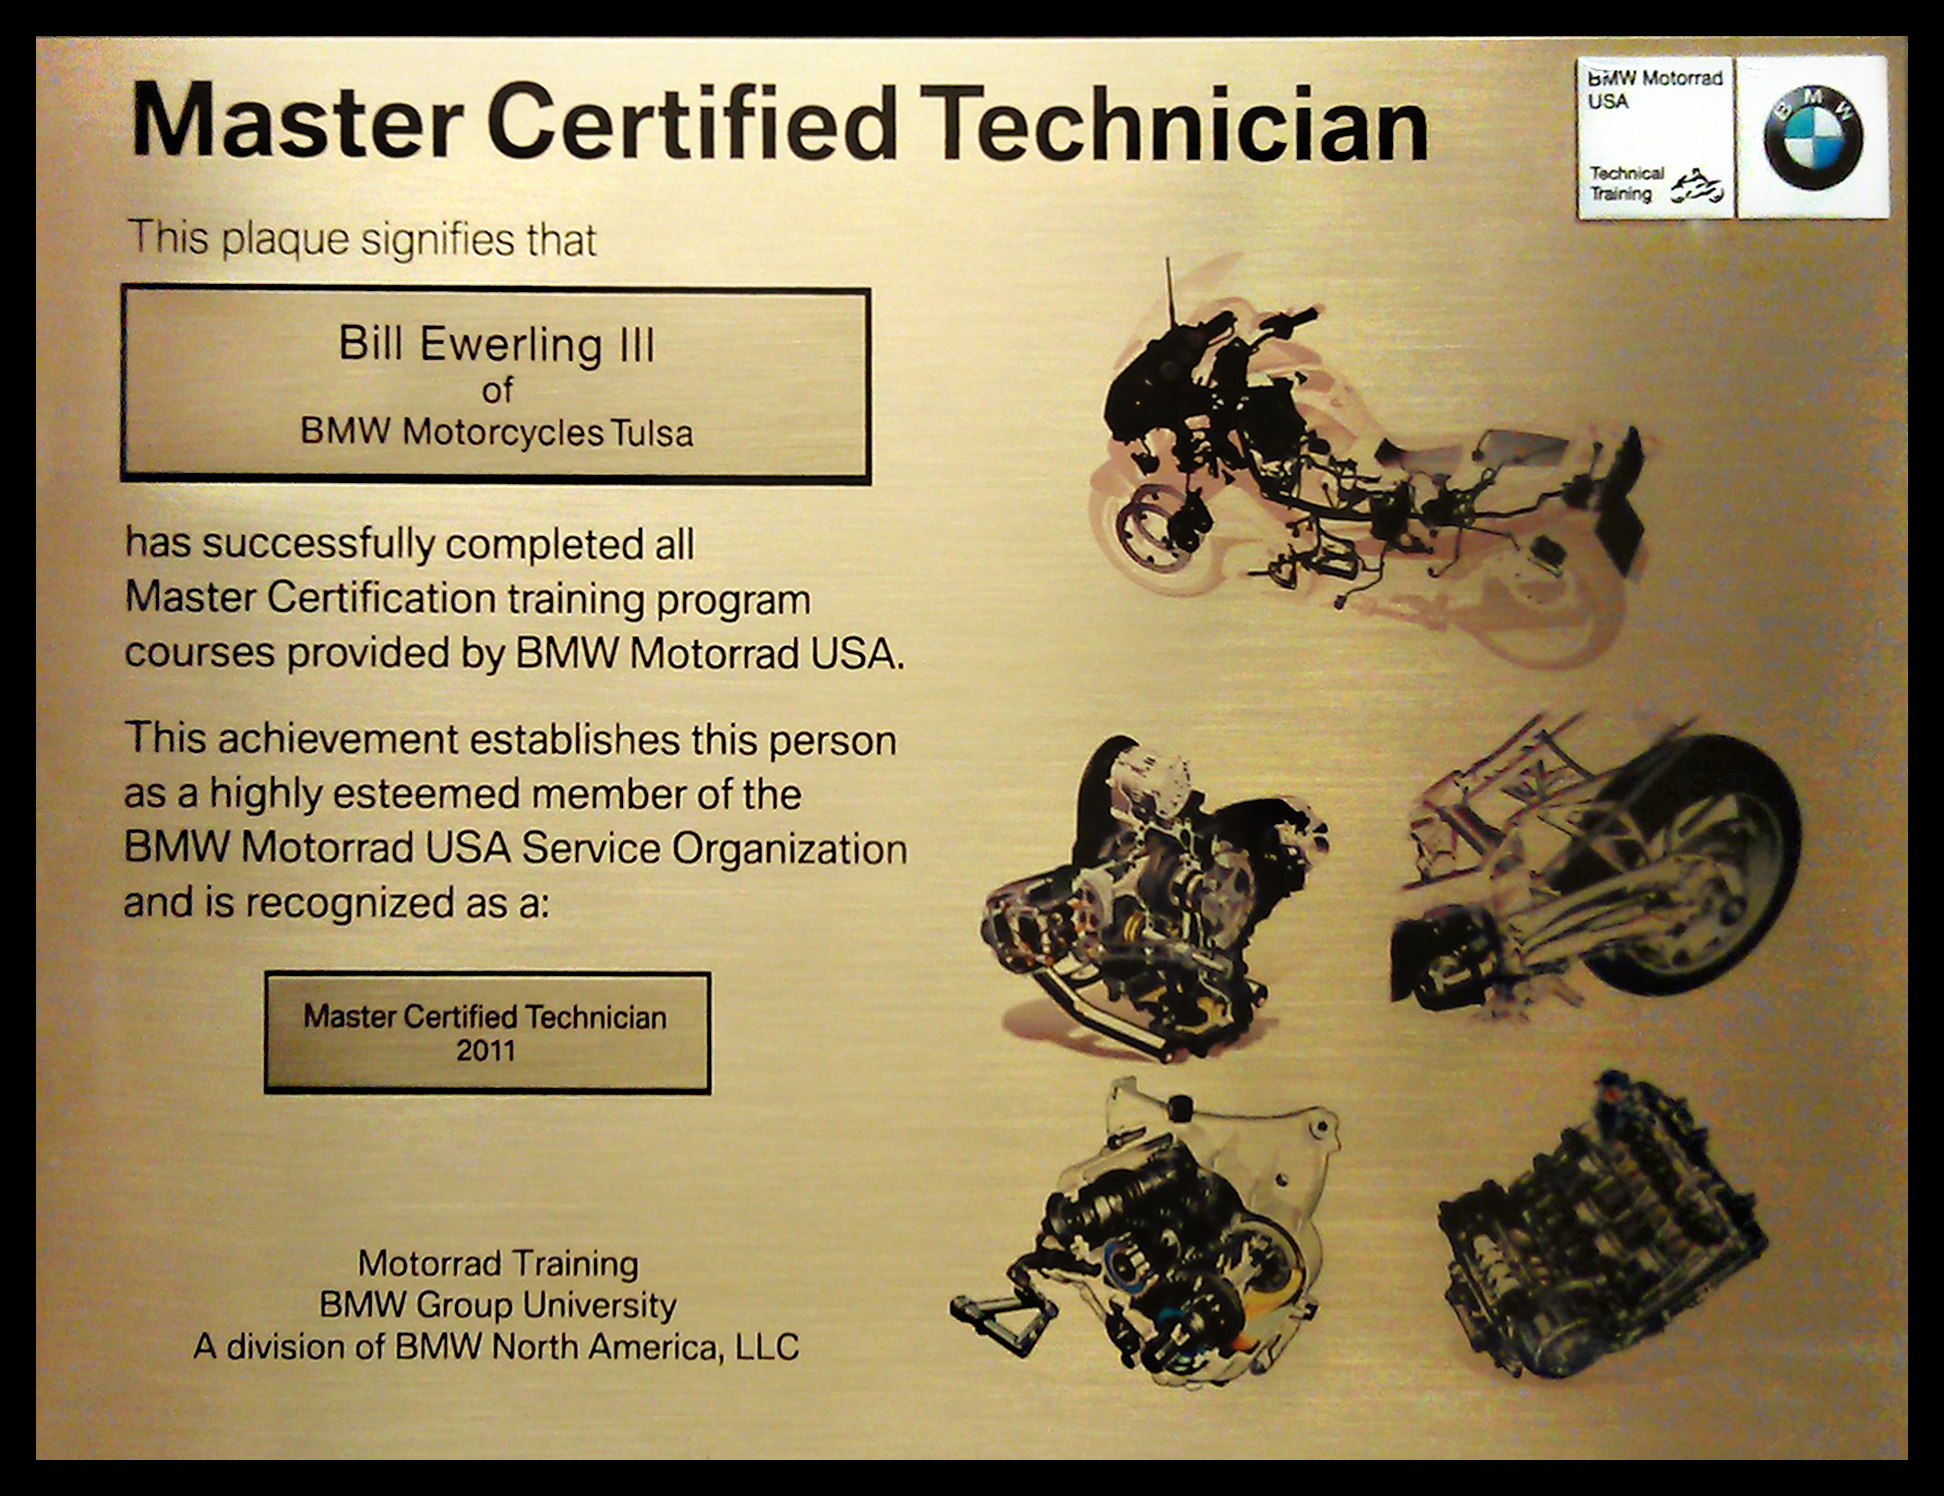 Bmw motorcycle sales tel 9183070477 toll free 8882192252 our certified master technicians 2011 training awards 1betcityfo Gallery